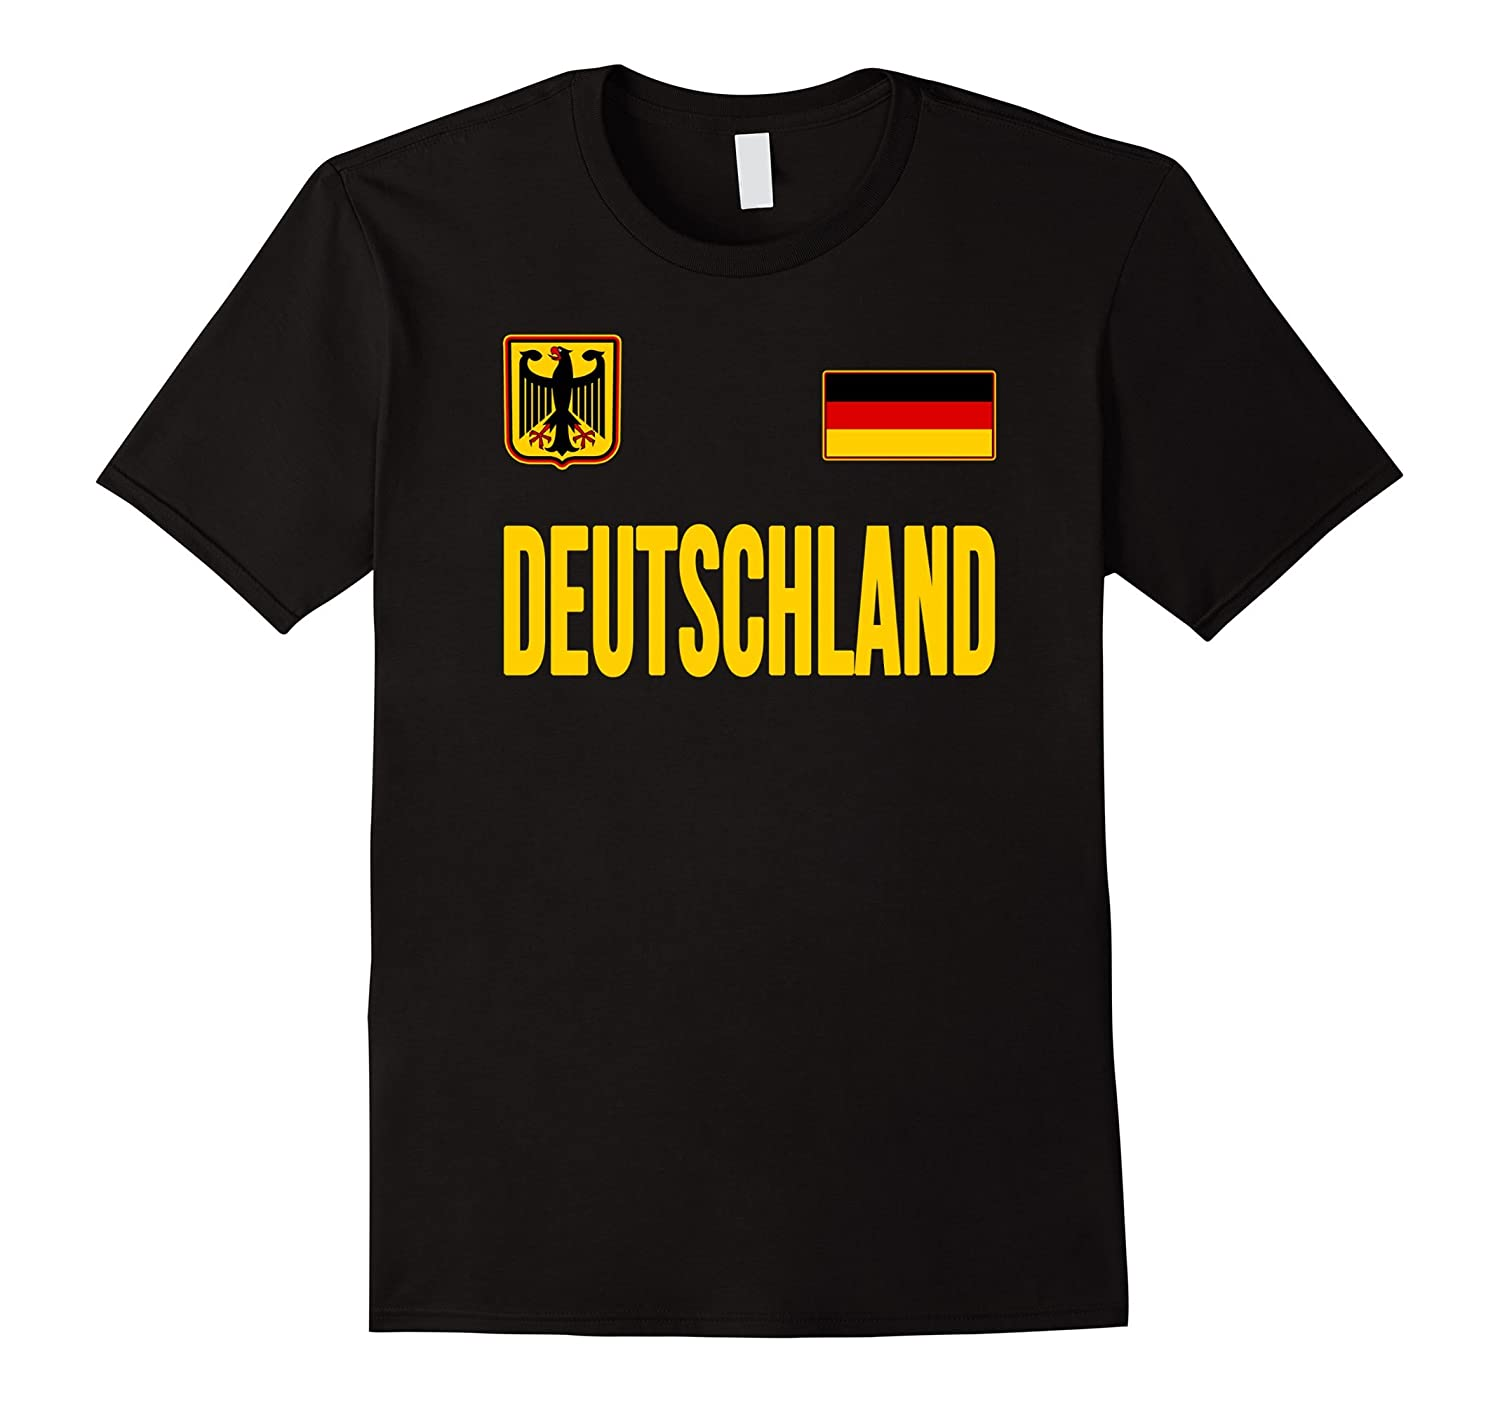 f70792f31 Deutschland T-shirt German Flag Germany Soccer Jersey Style-ah my shirt one  gift